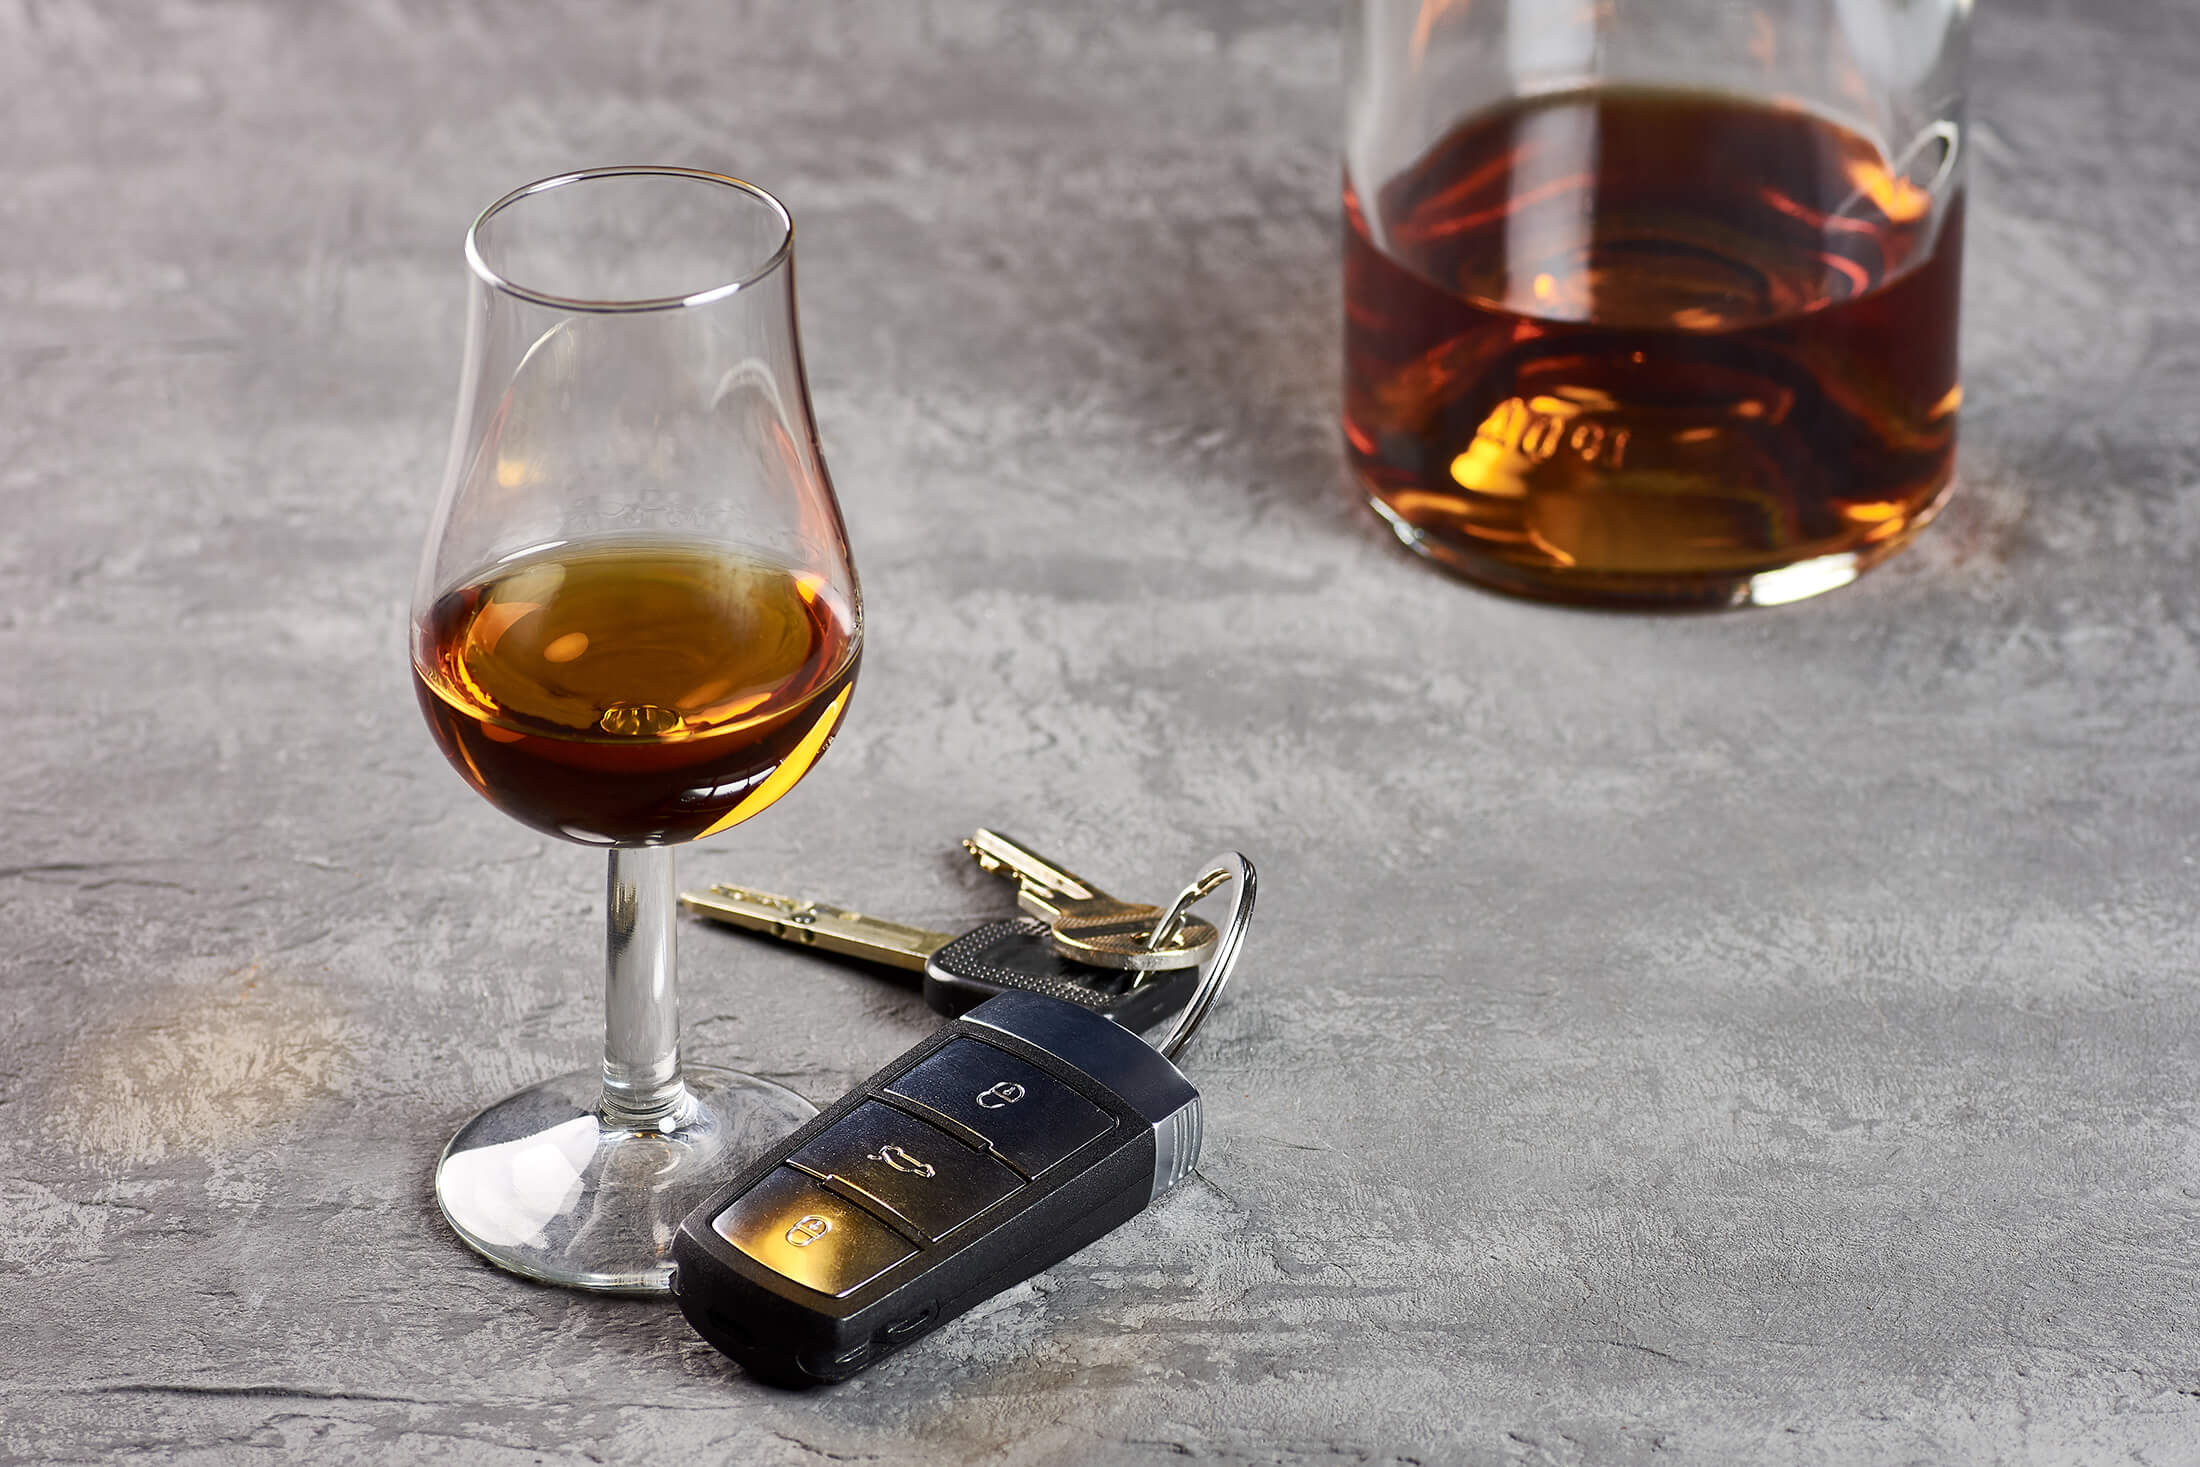 Implied Consent Law Illinois DUI Lawyer in Chicago